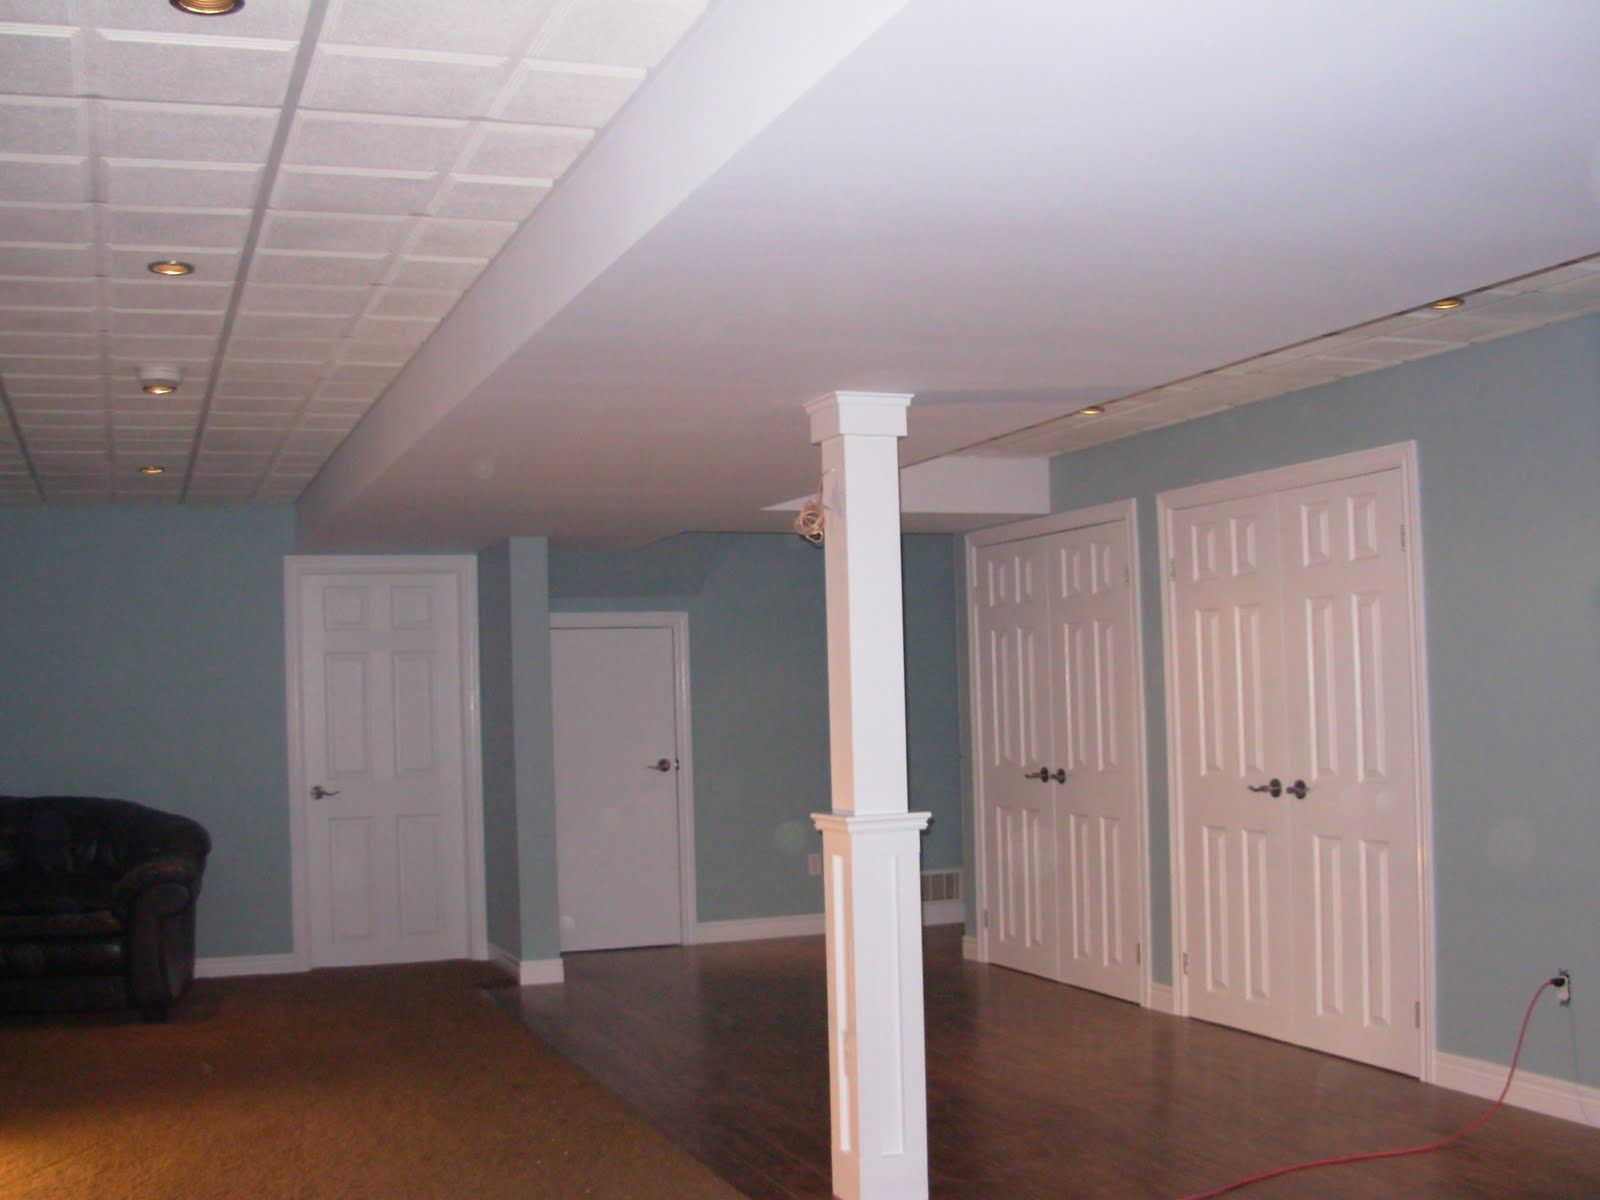 Soundproofing a basement drop ceiling httpdreamtree ceiling soundproofing a basement drop ceiling dailygadgetfo Image collections